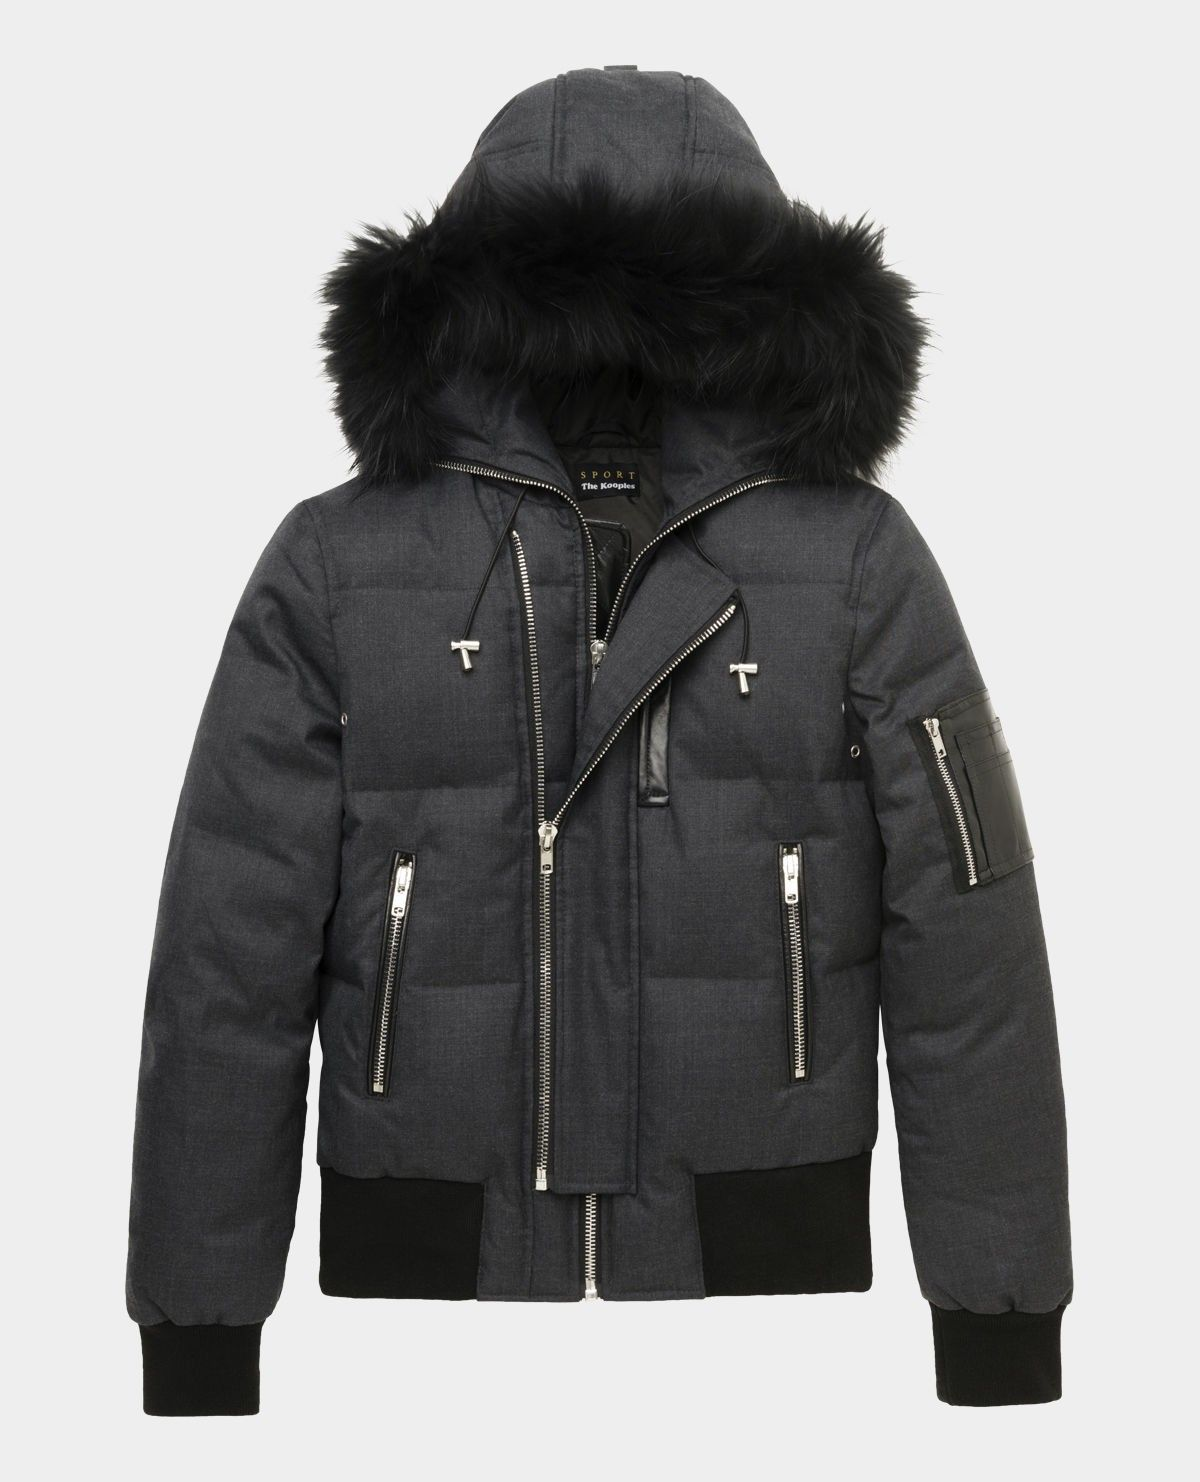 Short zipped down jacket with fur hood and leather pocket